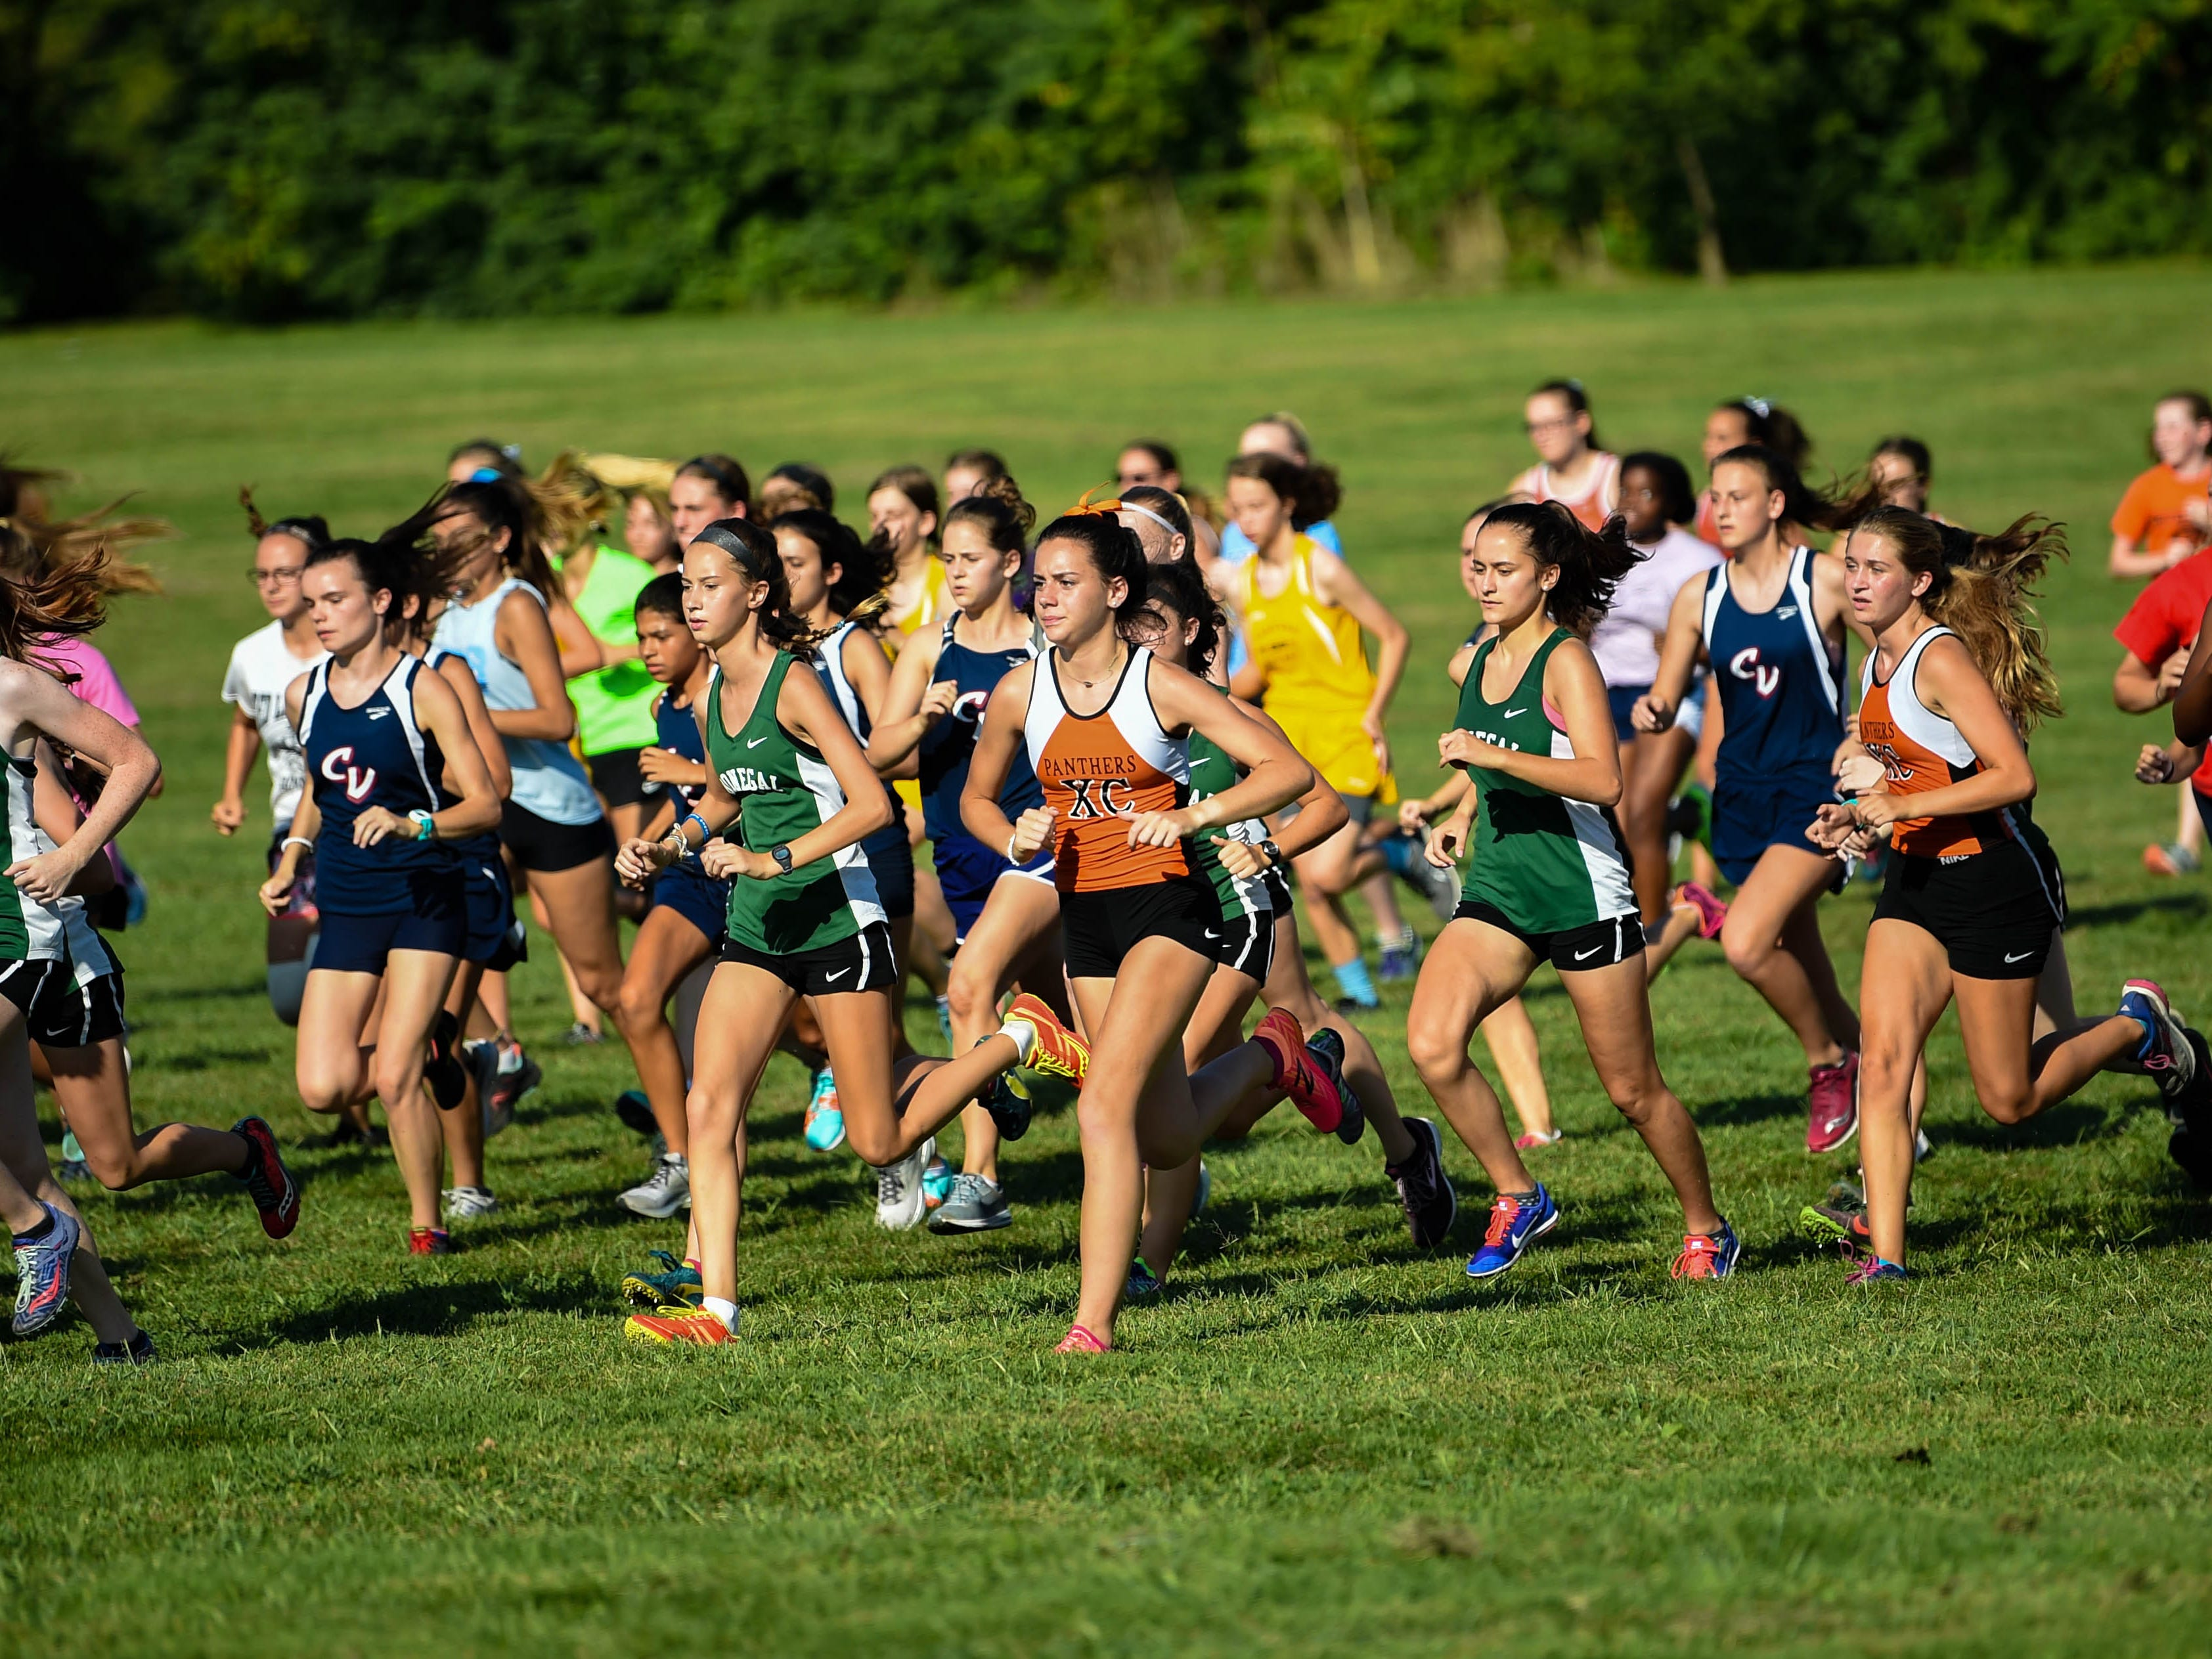 The girls fight for position at the start of the Cross Country scrimmage at John Rudy County Park on August 30, 2018.